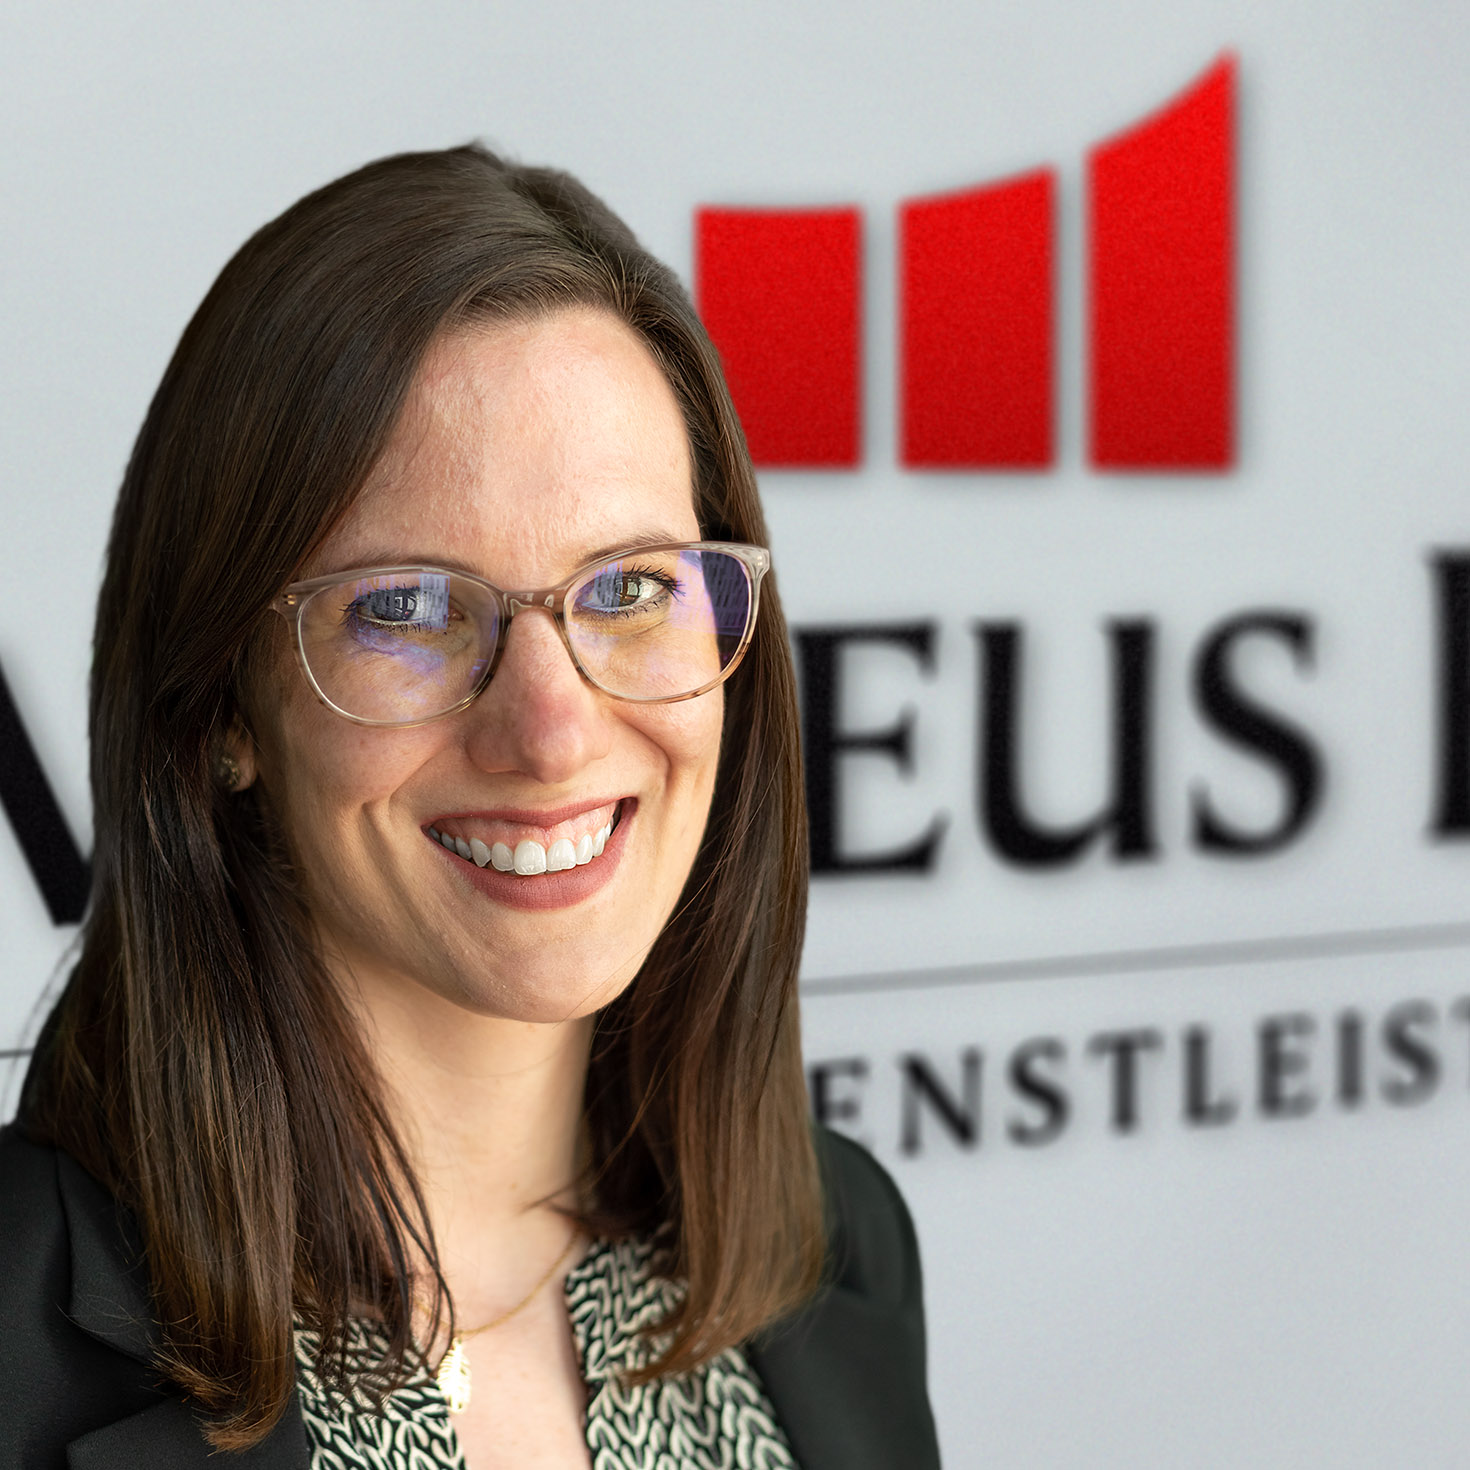 Laura Hesse, Senior Recruiterin